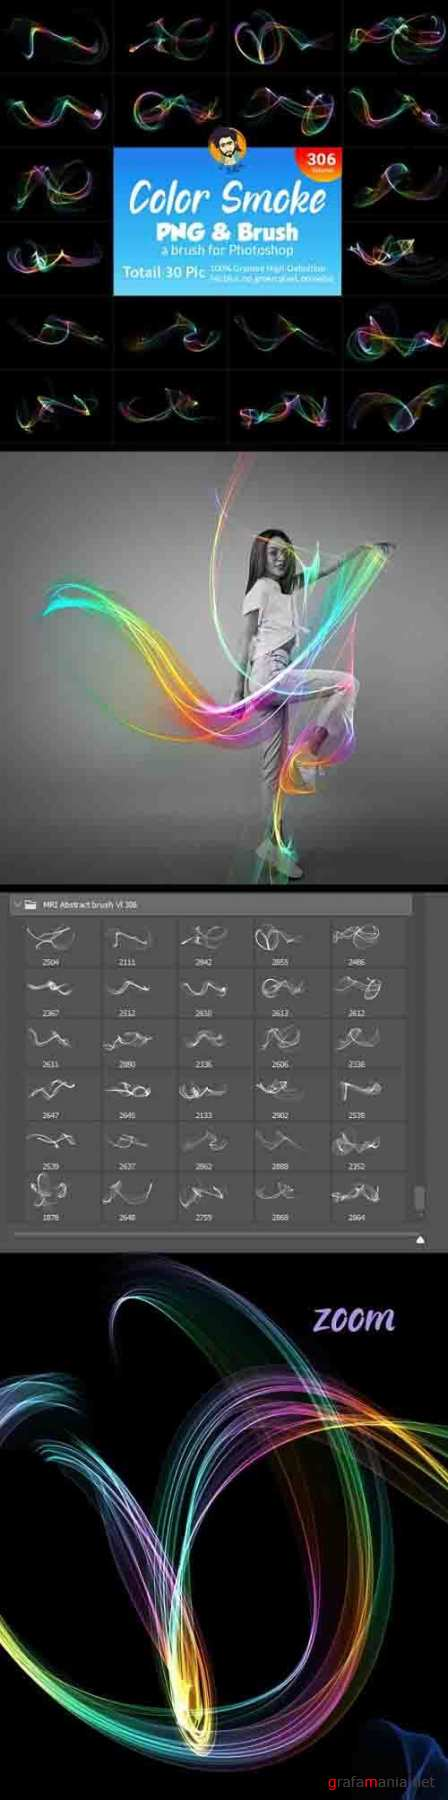 GraphicRiver - Abstract Smoke Brush and PNG Shape 29956103